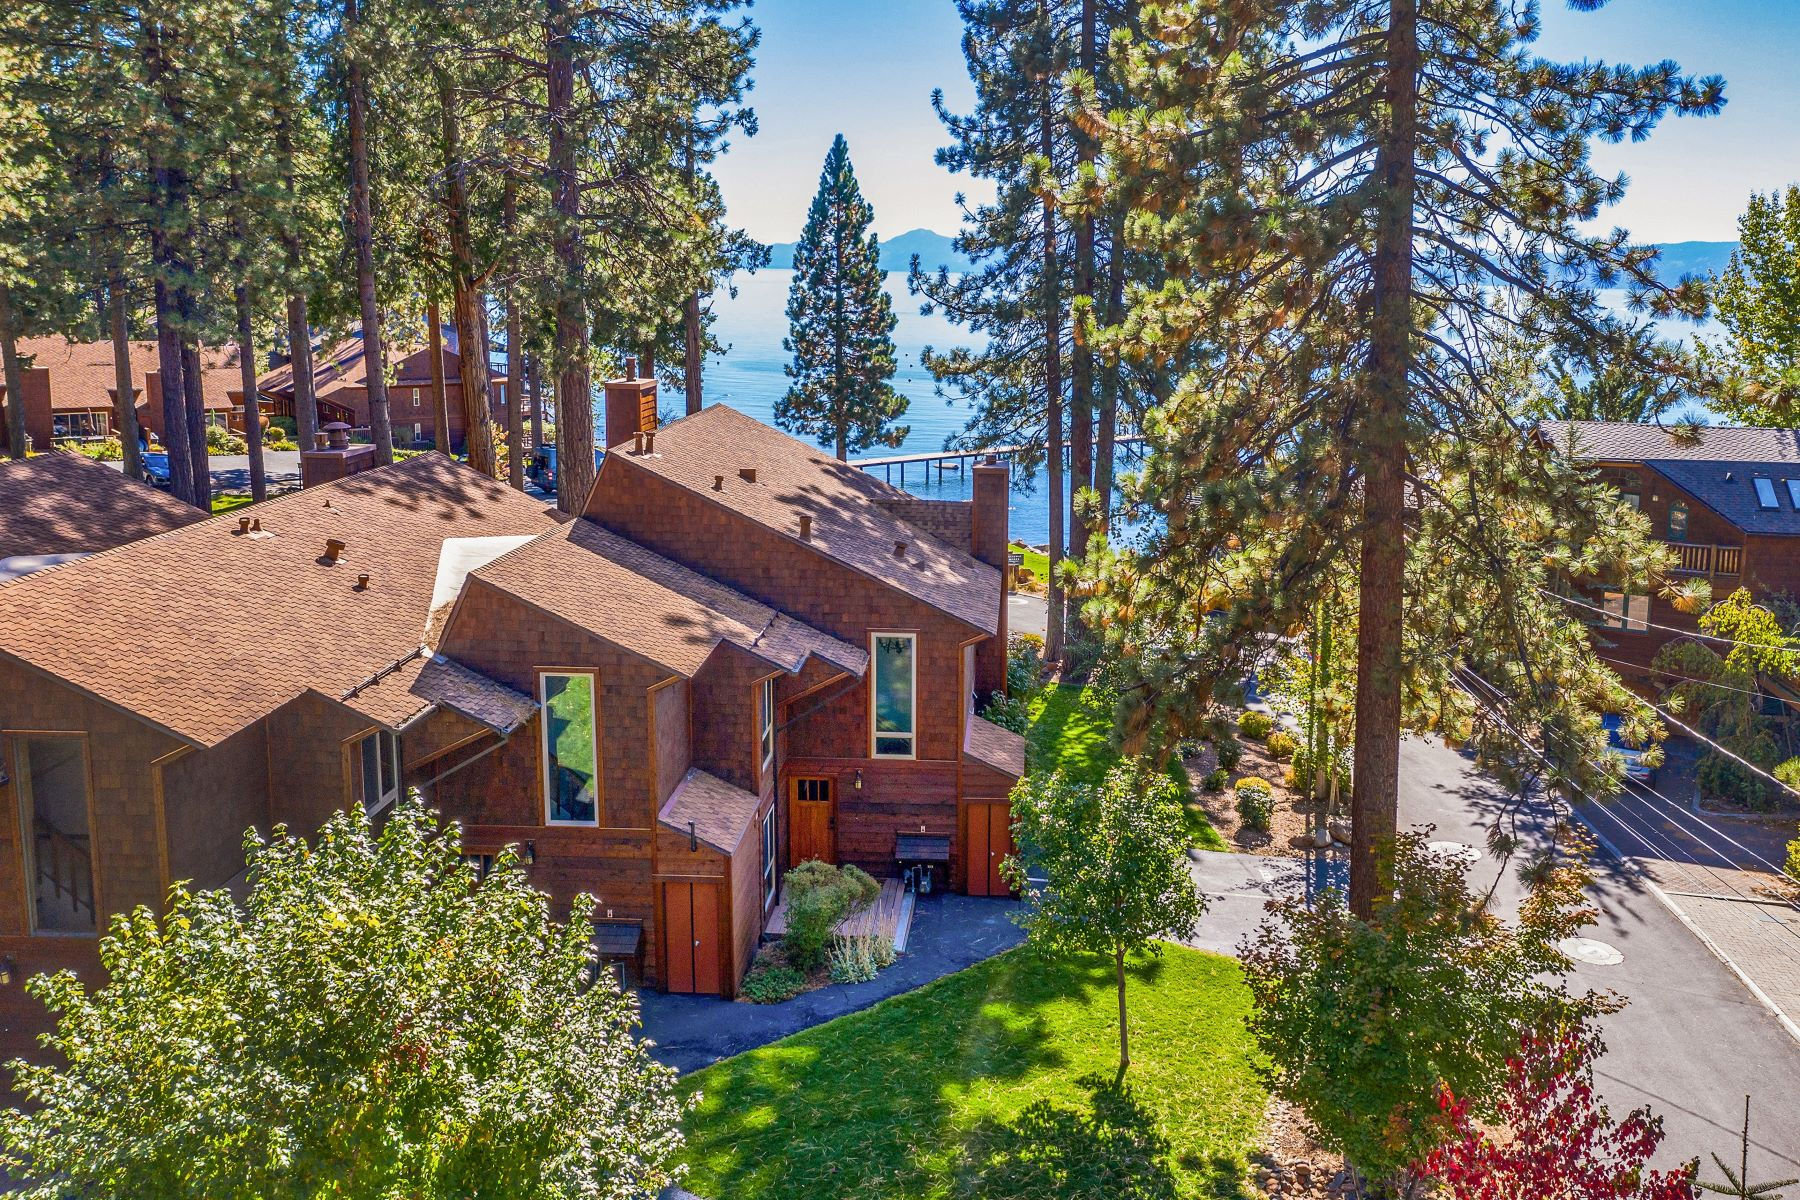 Property for Active at Stunning Lake Views in Brockway Shores 144 Chipmunk Street #3 Kings Beach, California 96143 United States